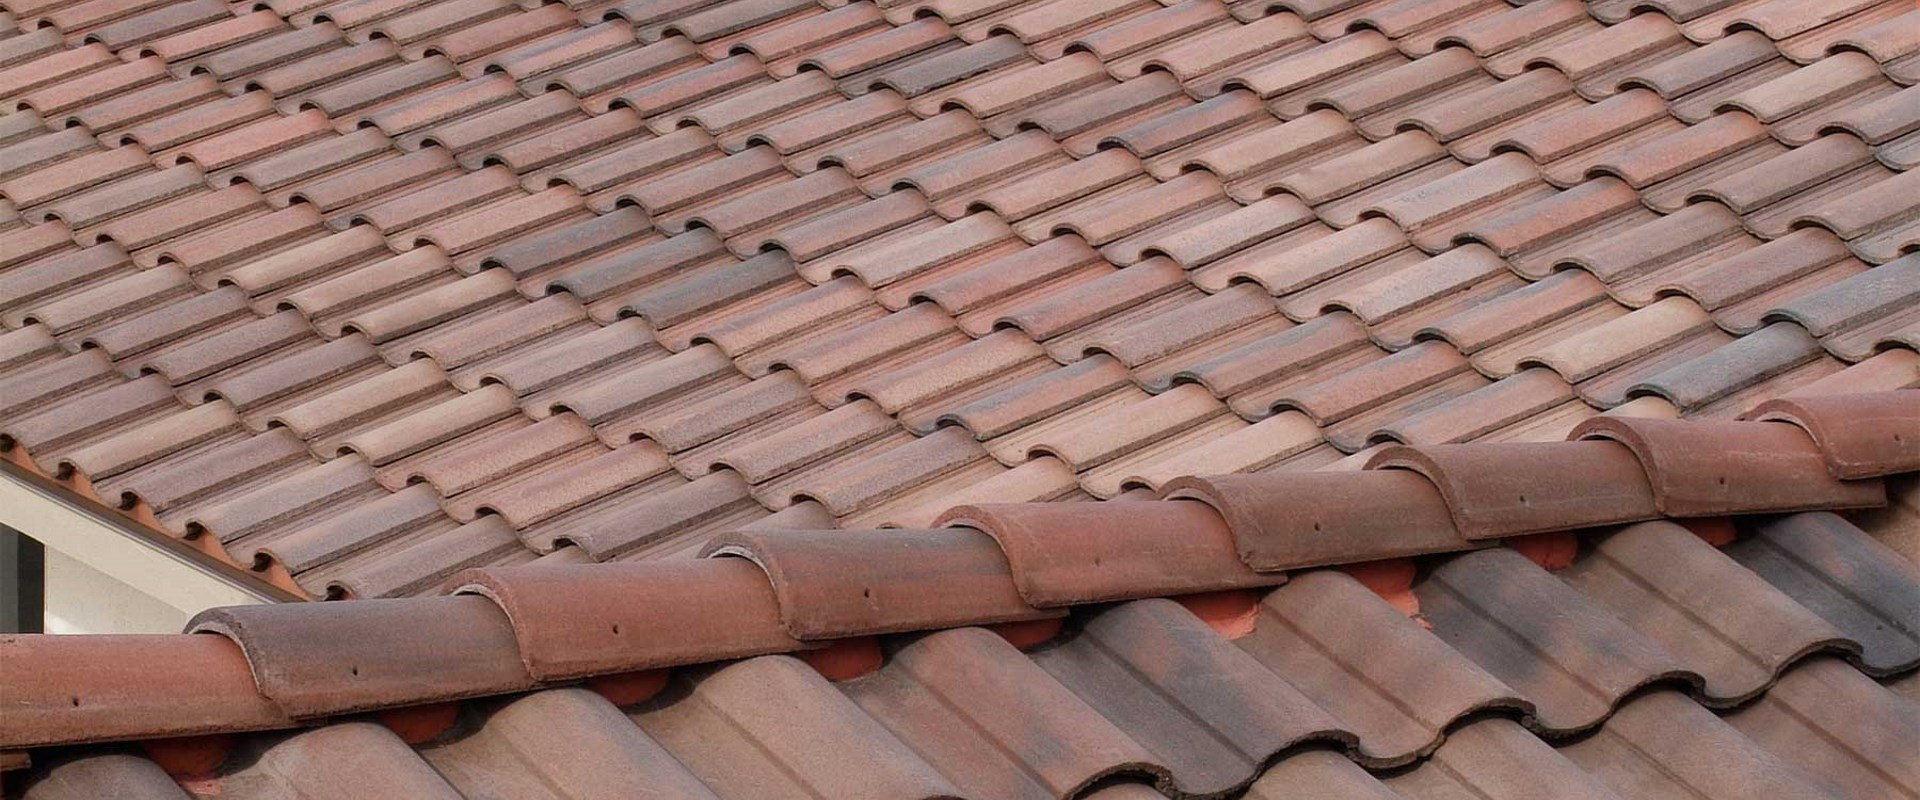 Best Roofing Materials for the Phoenix, AZ Summers